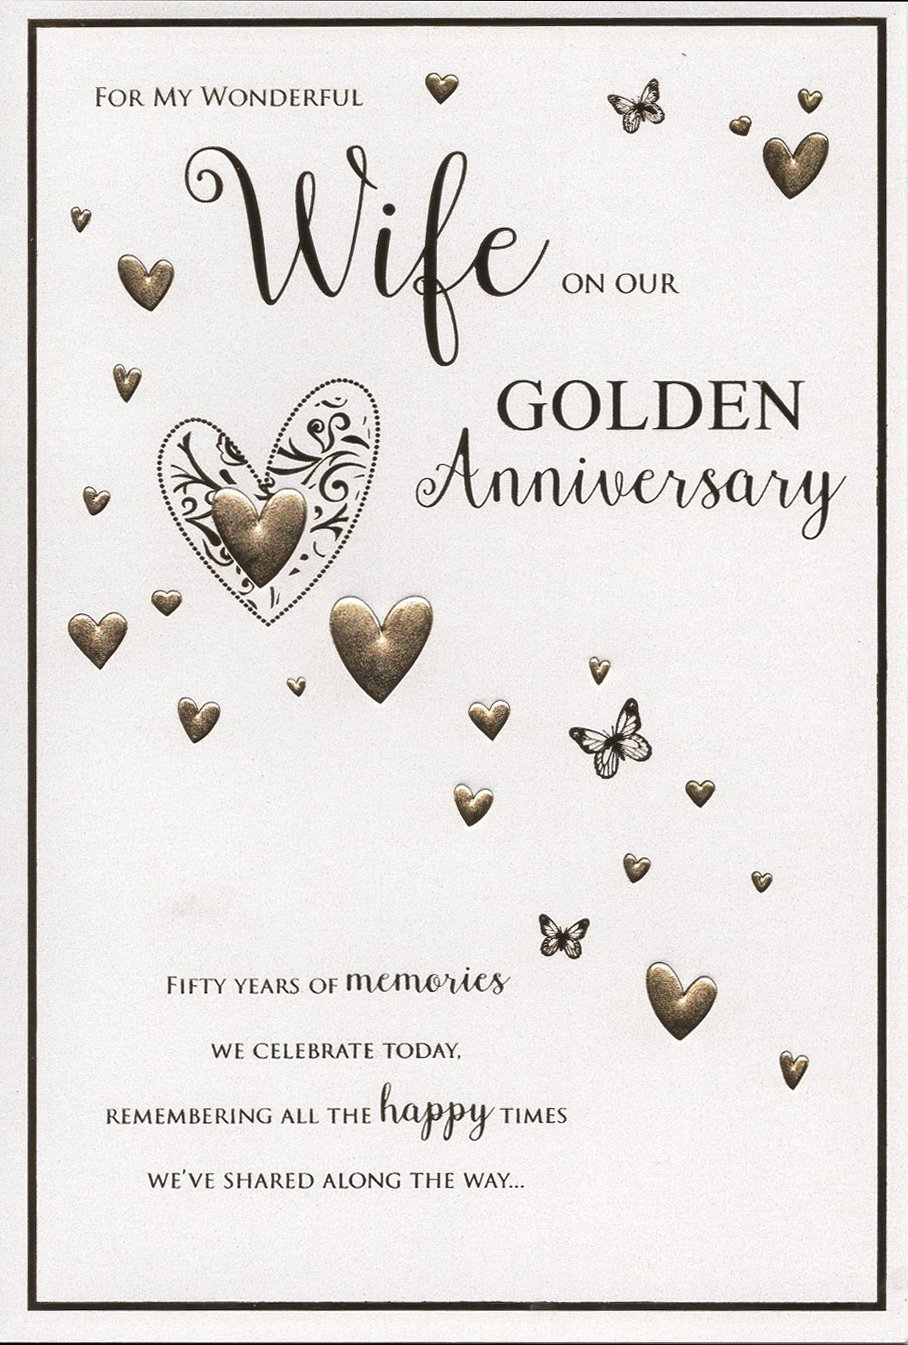 50th wedding anniversary card for my wife